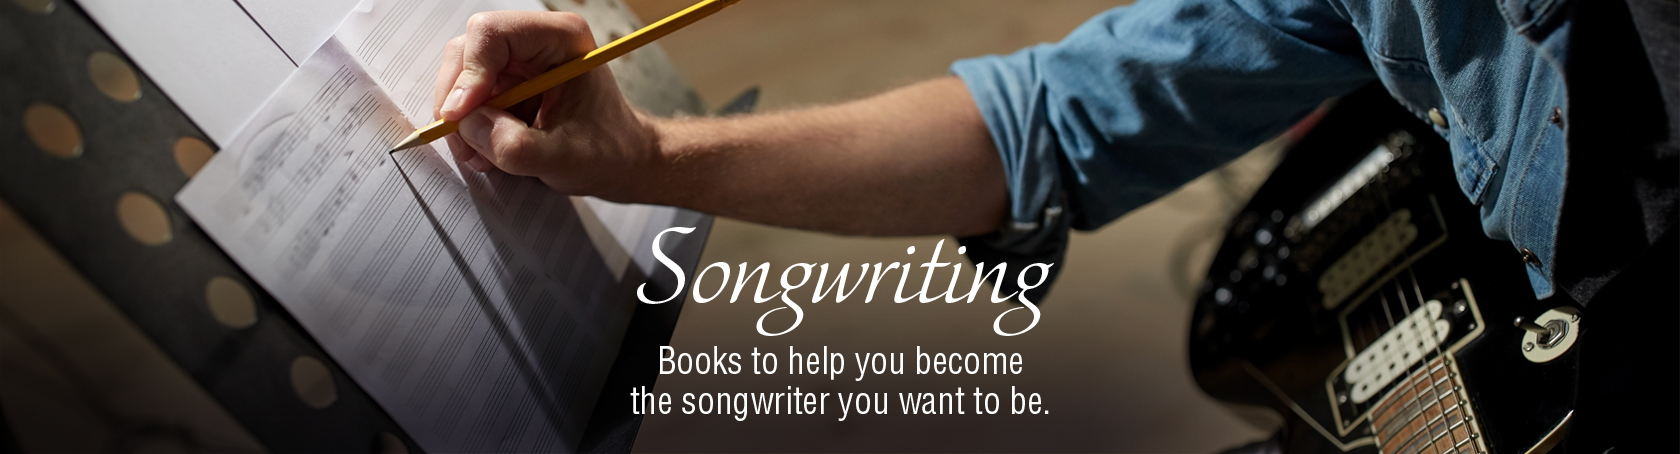 Songwriting - Books to help you become the songwriter you want to be